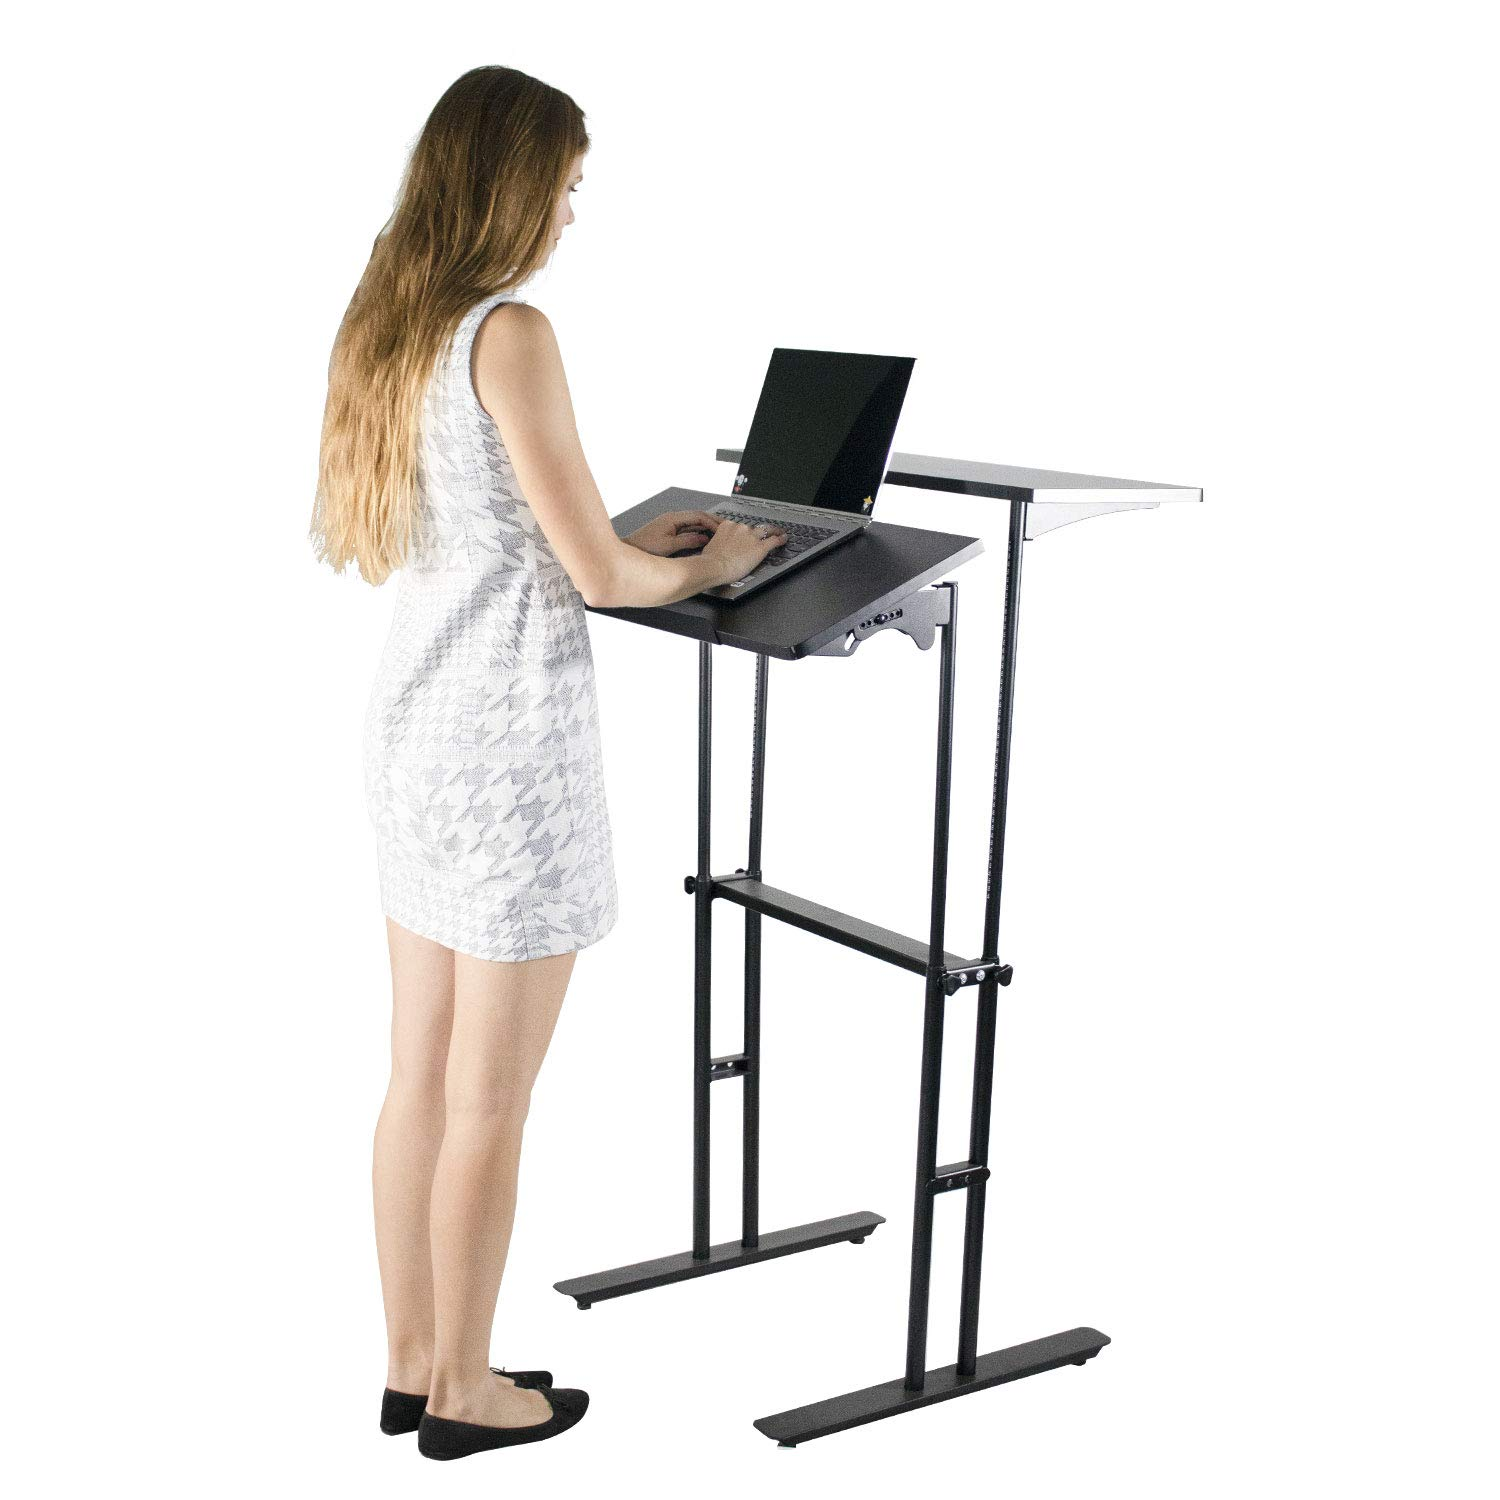 Heyesk Stand Up Desk Height Adjustable Home Office Desk with Standing (Black) by heyesk (Image #1)